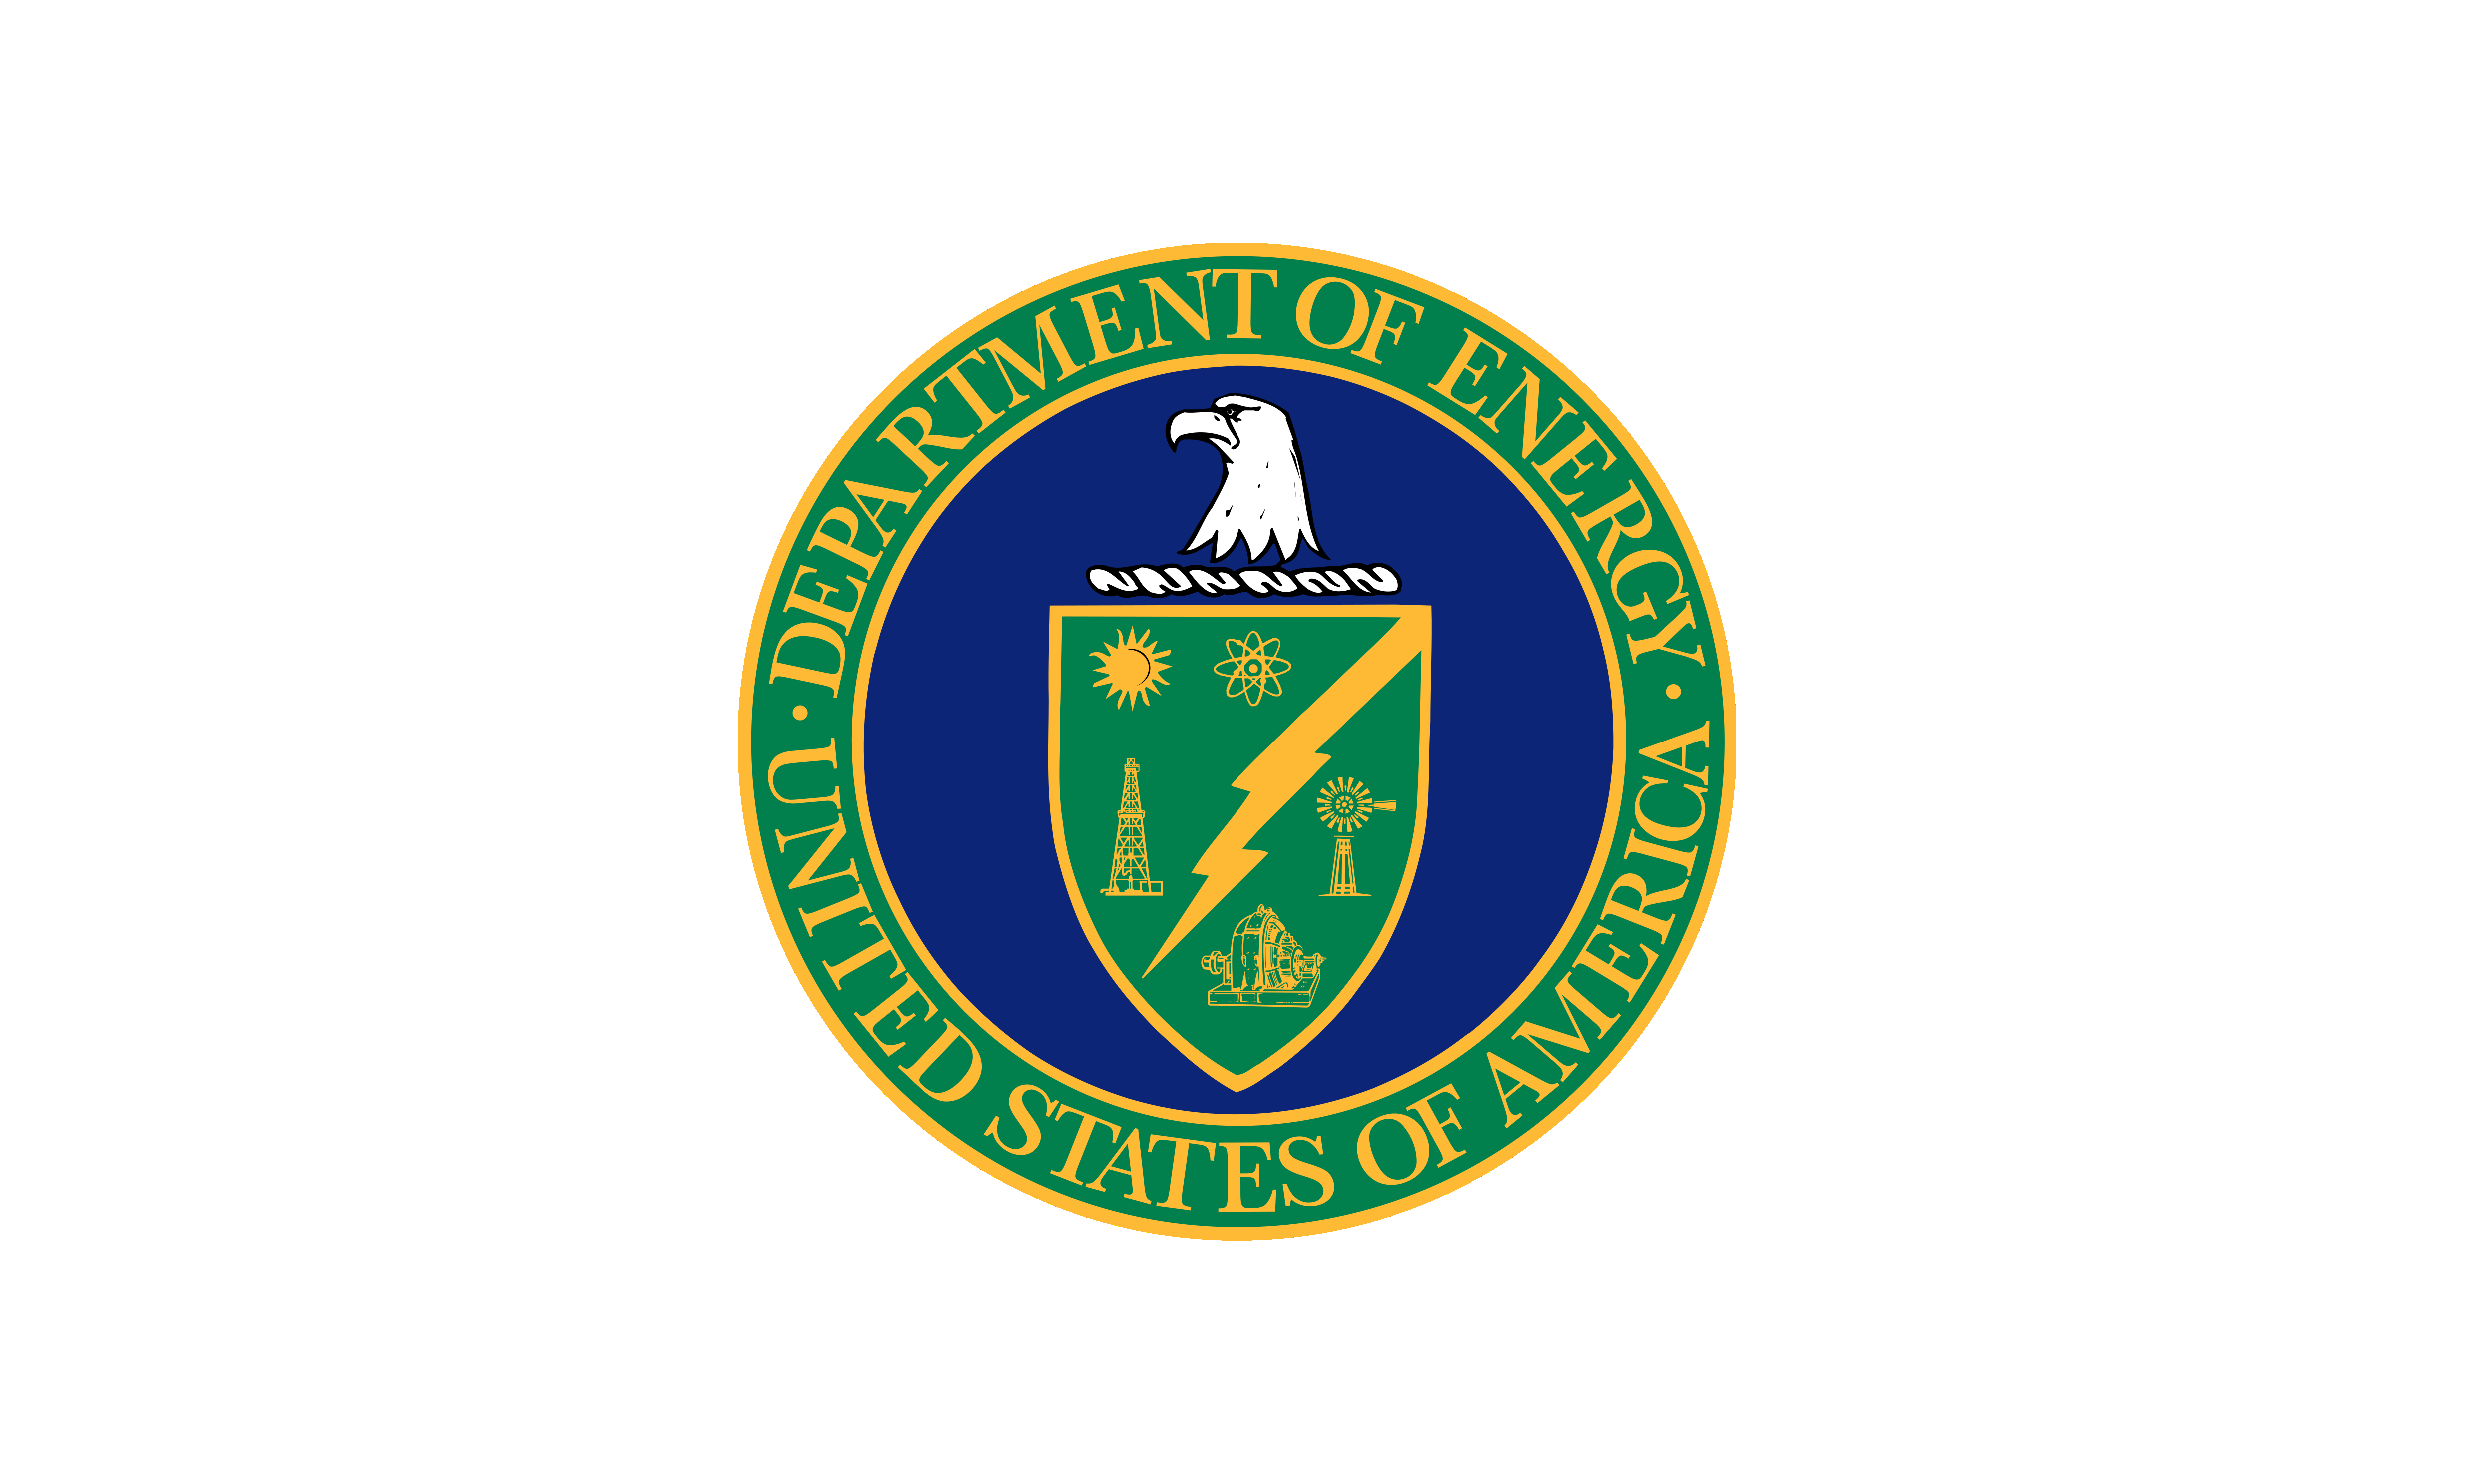 Department of energy clipart picture transparent download Doe Logos picture transparent download